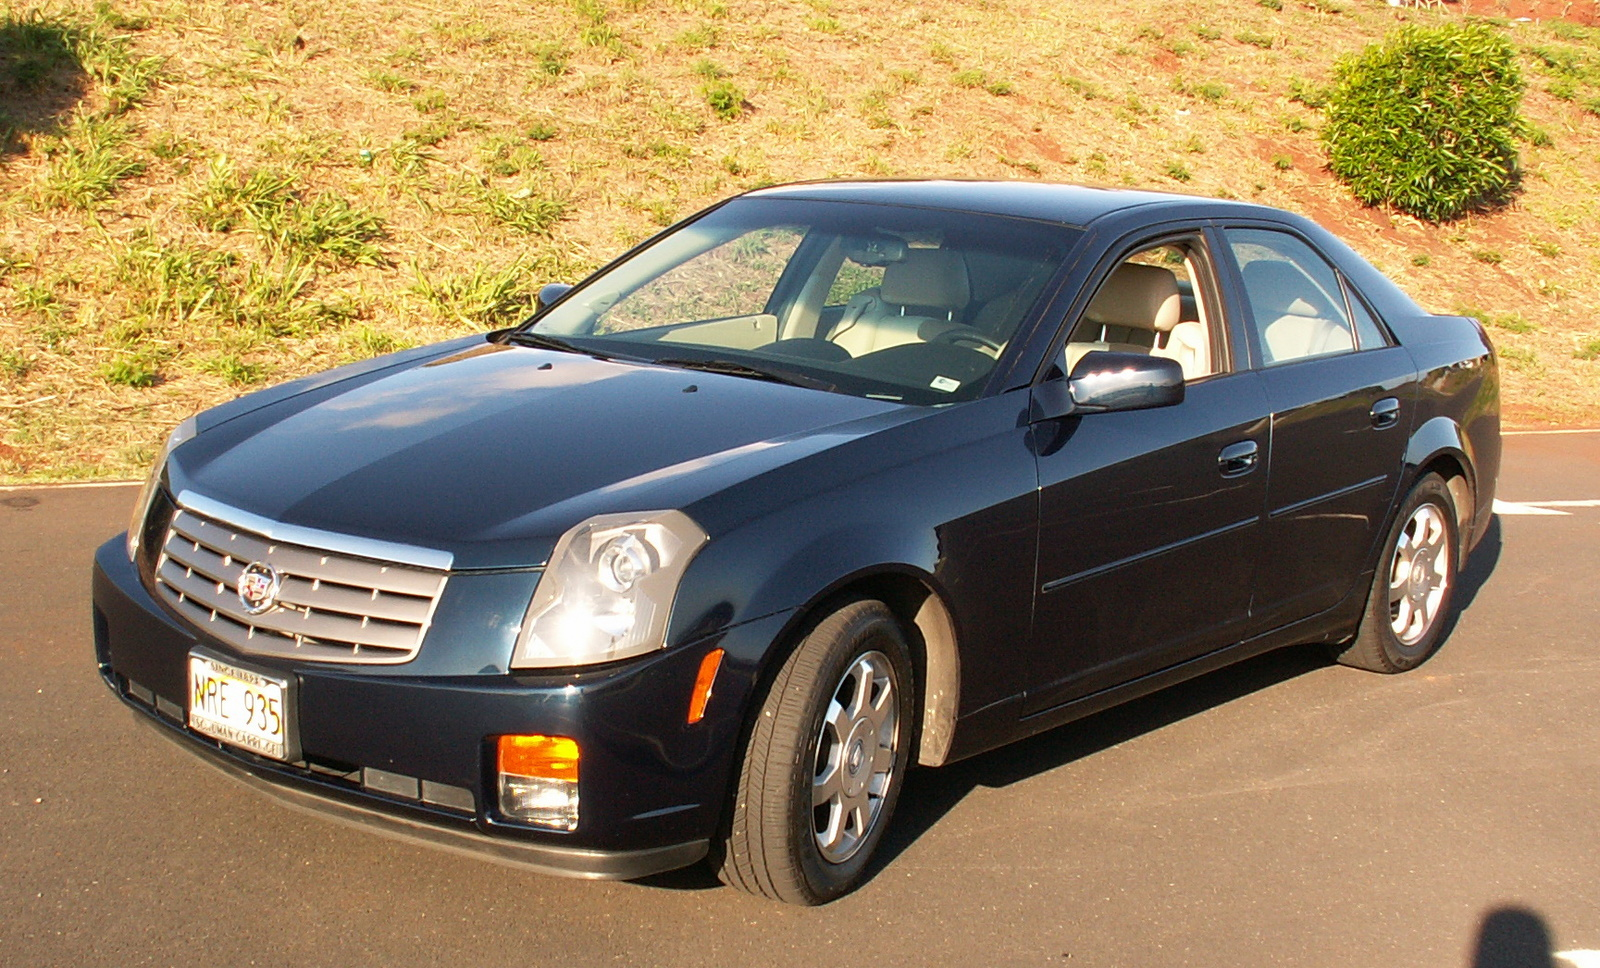 2004 cadillac cts pictures cargurus. Black Bedroom Furniture Sets. Home Design Ideas